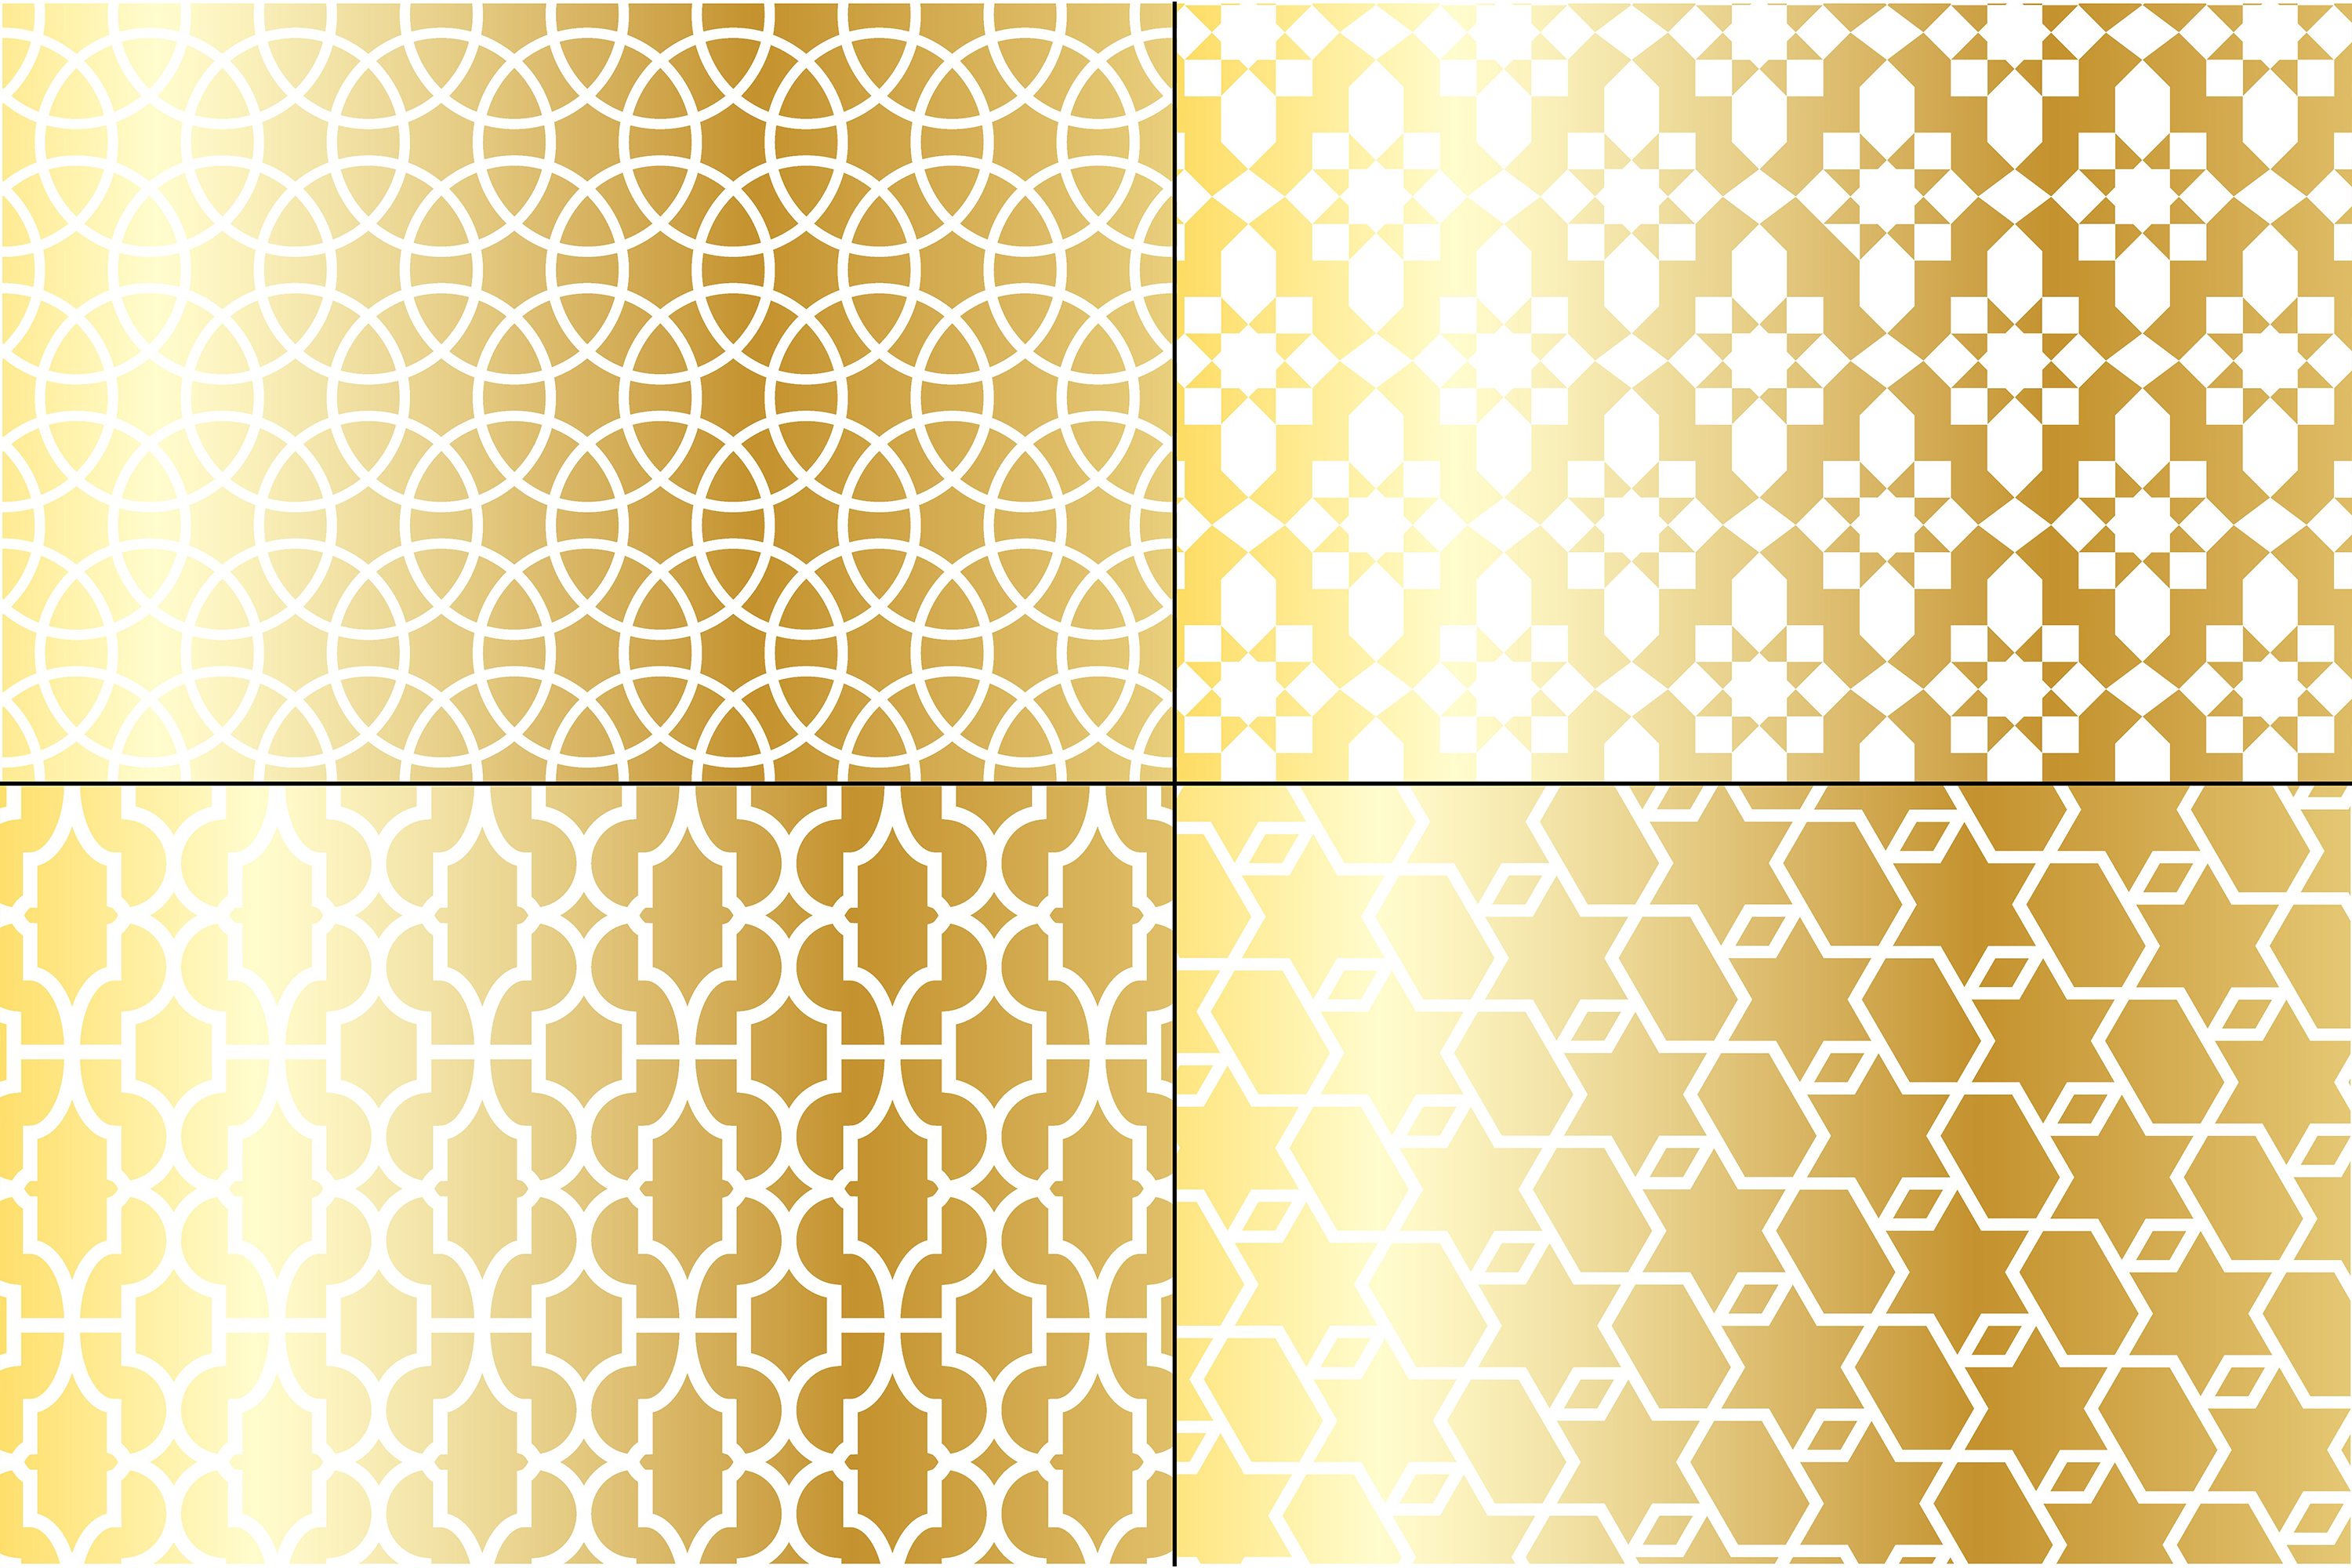 Metallic Gold Moroccan Patterns example image 2